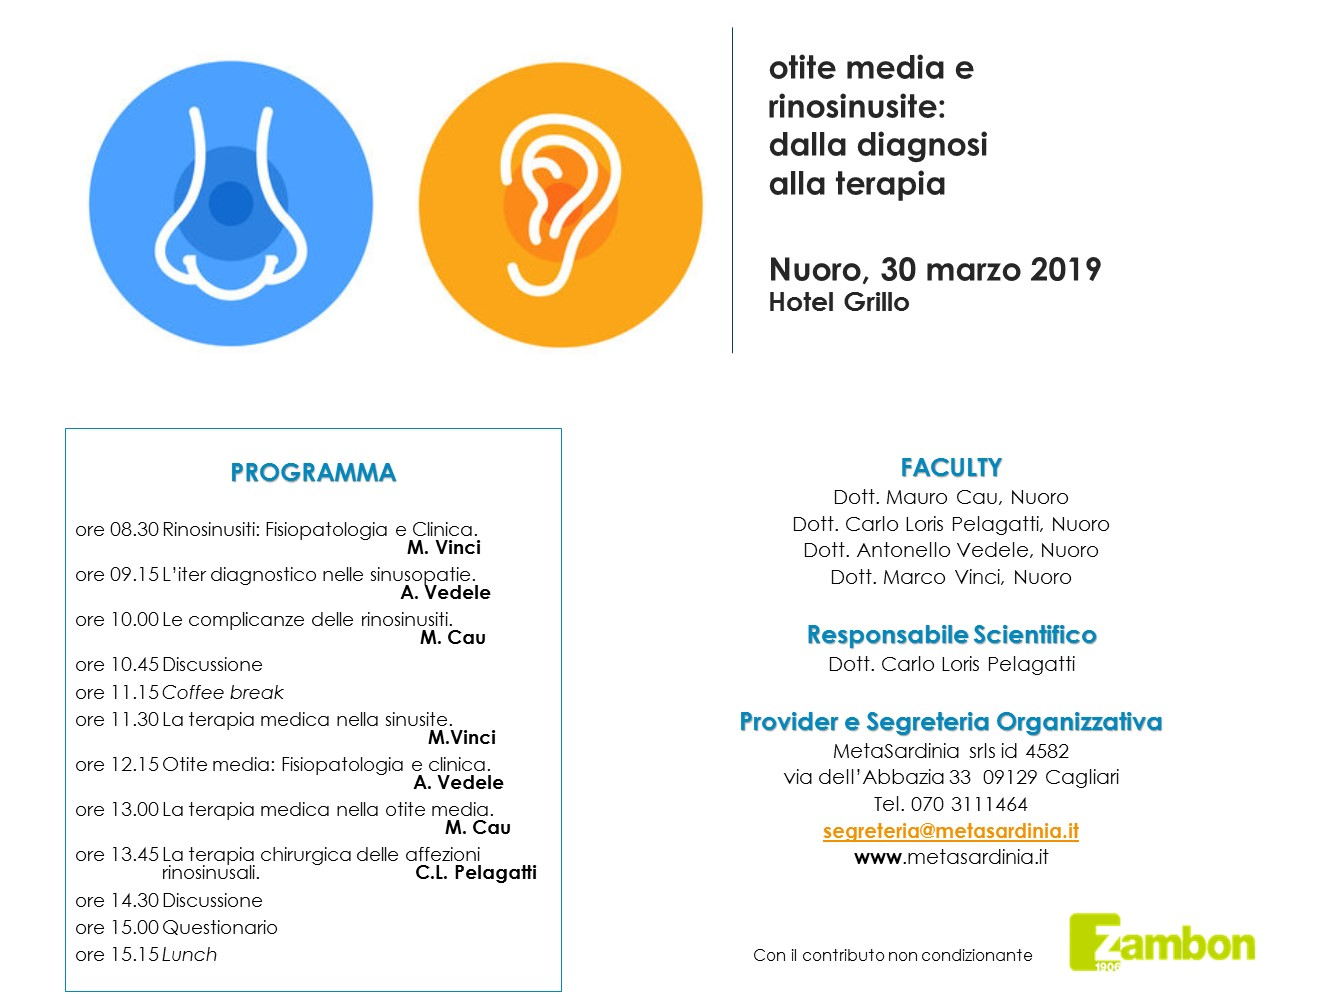 OTITE MEDIA E RINOSINUSITE: DALLA DIAGNOSI ALLA TERAPIA